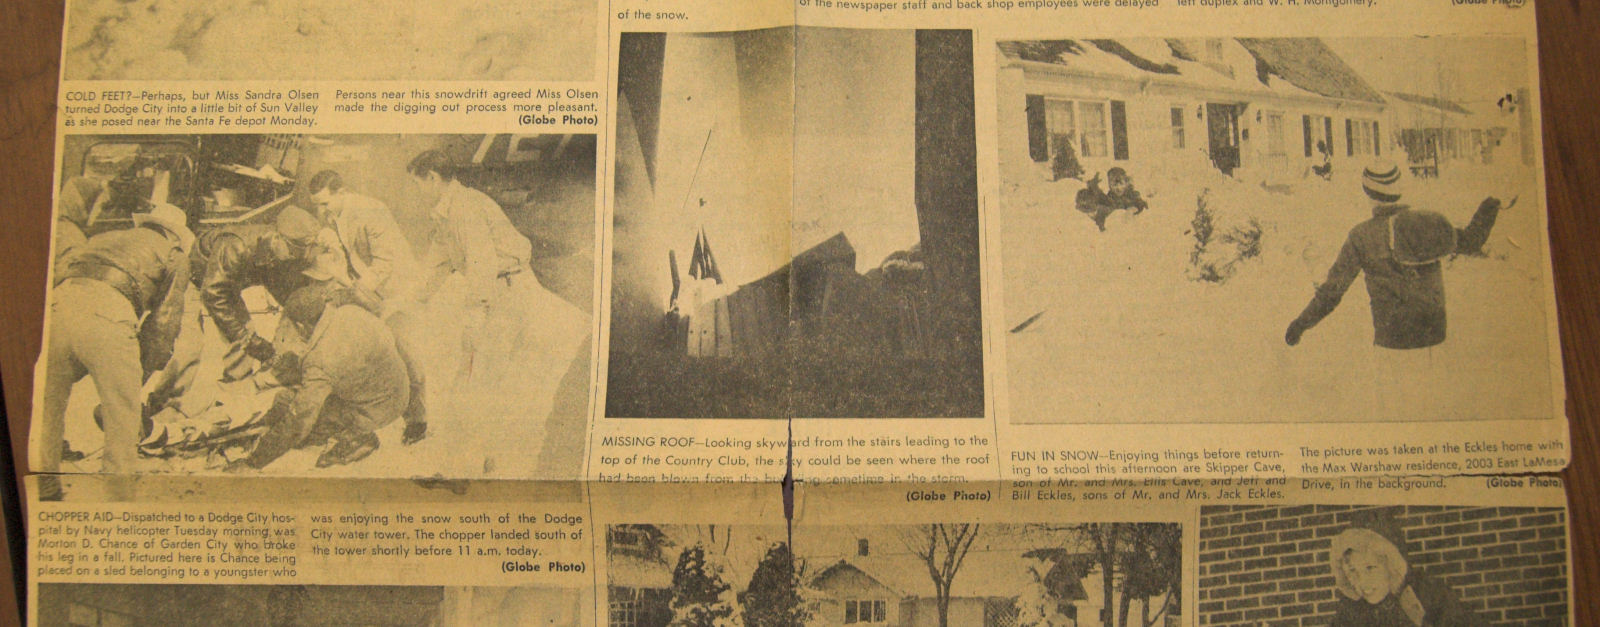 60th Anniversary of the March 23-25, 1957 Blizzard